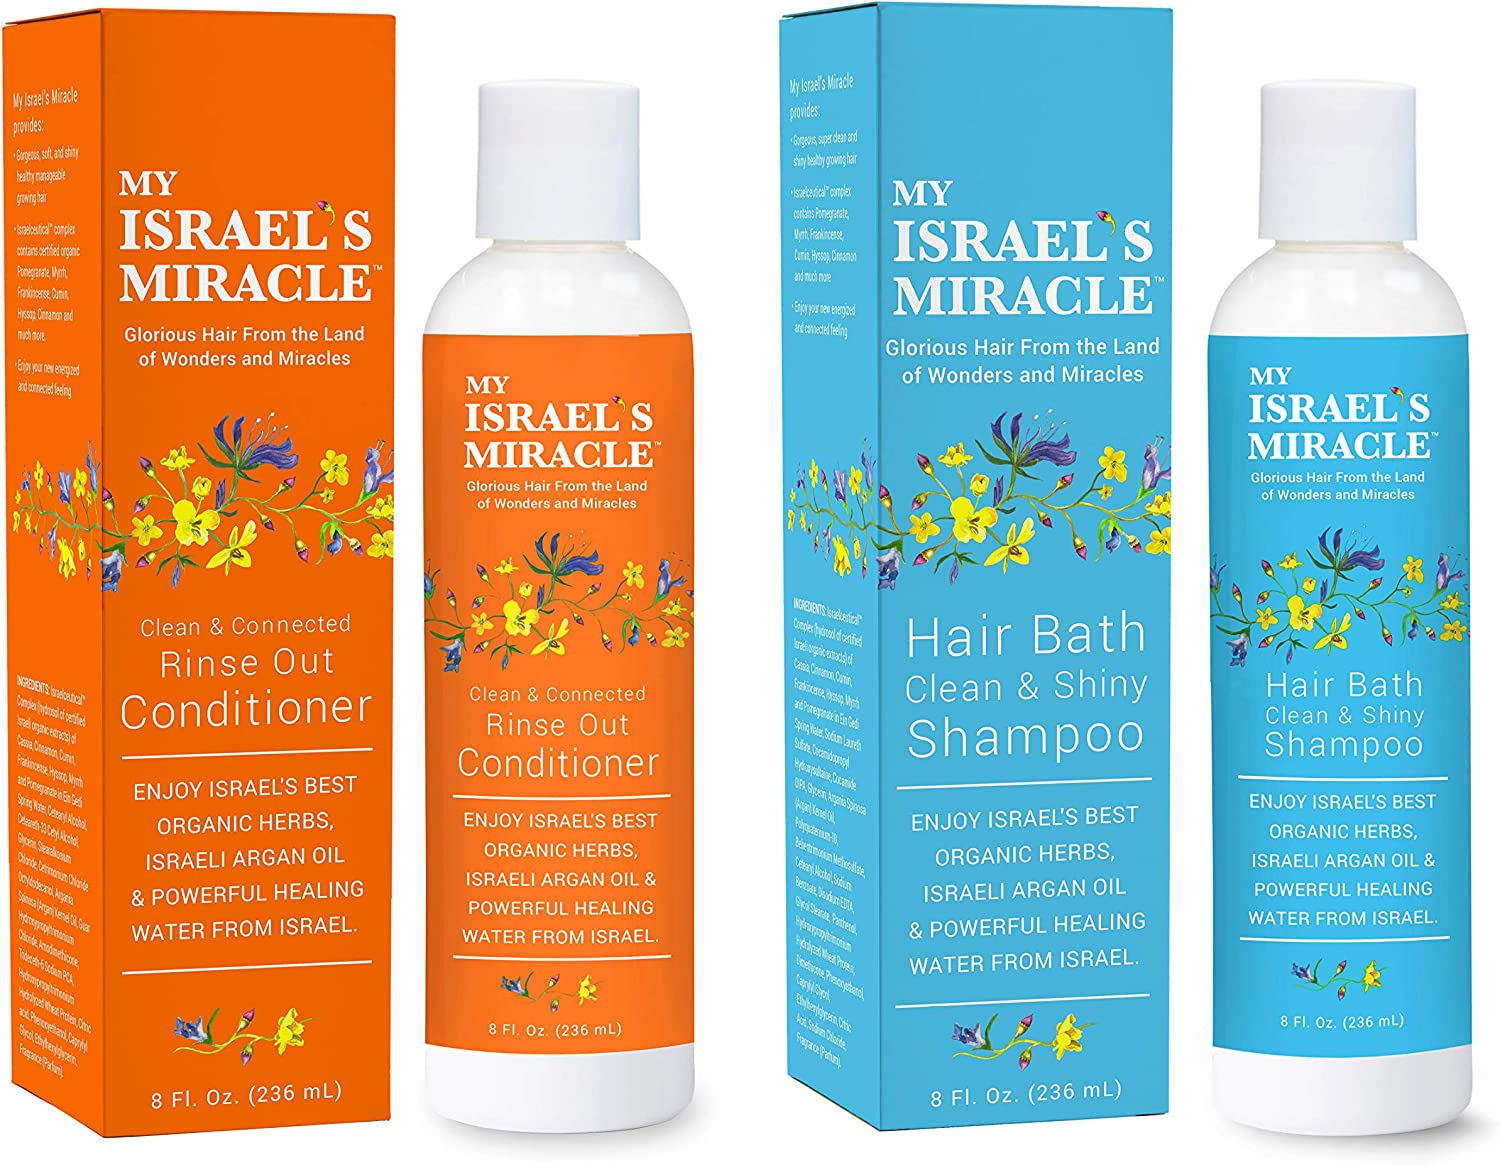 Organic Shampoo and Conditioner Set – Argan Oil Shampoo and Hair Conditioner - Herbal Hair Conditioner – Natural Hair Products with Powerful Organic Hair Care Herbs from Israel